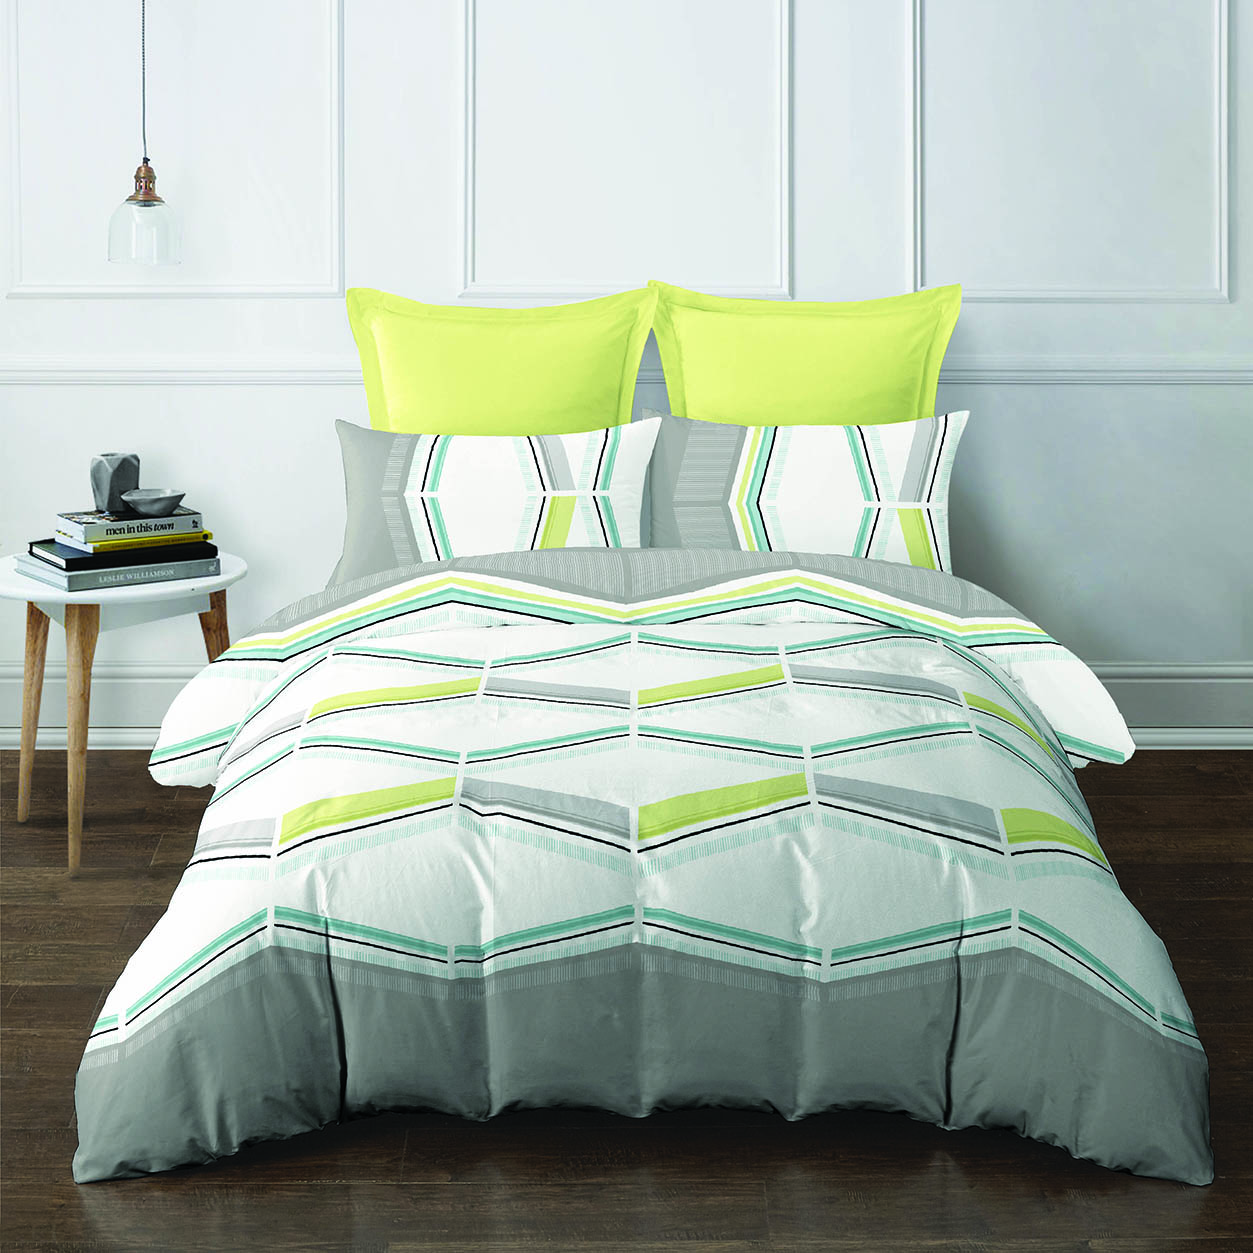 4pcs Queen Fitted Set (420 thread count, smooth cotton) - Stivo